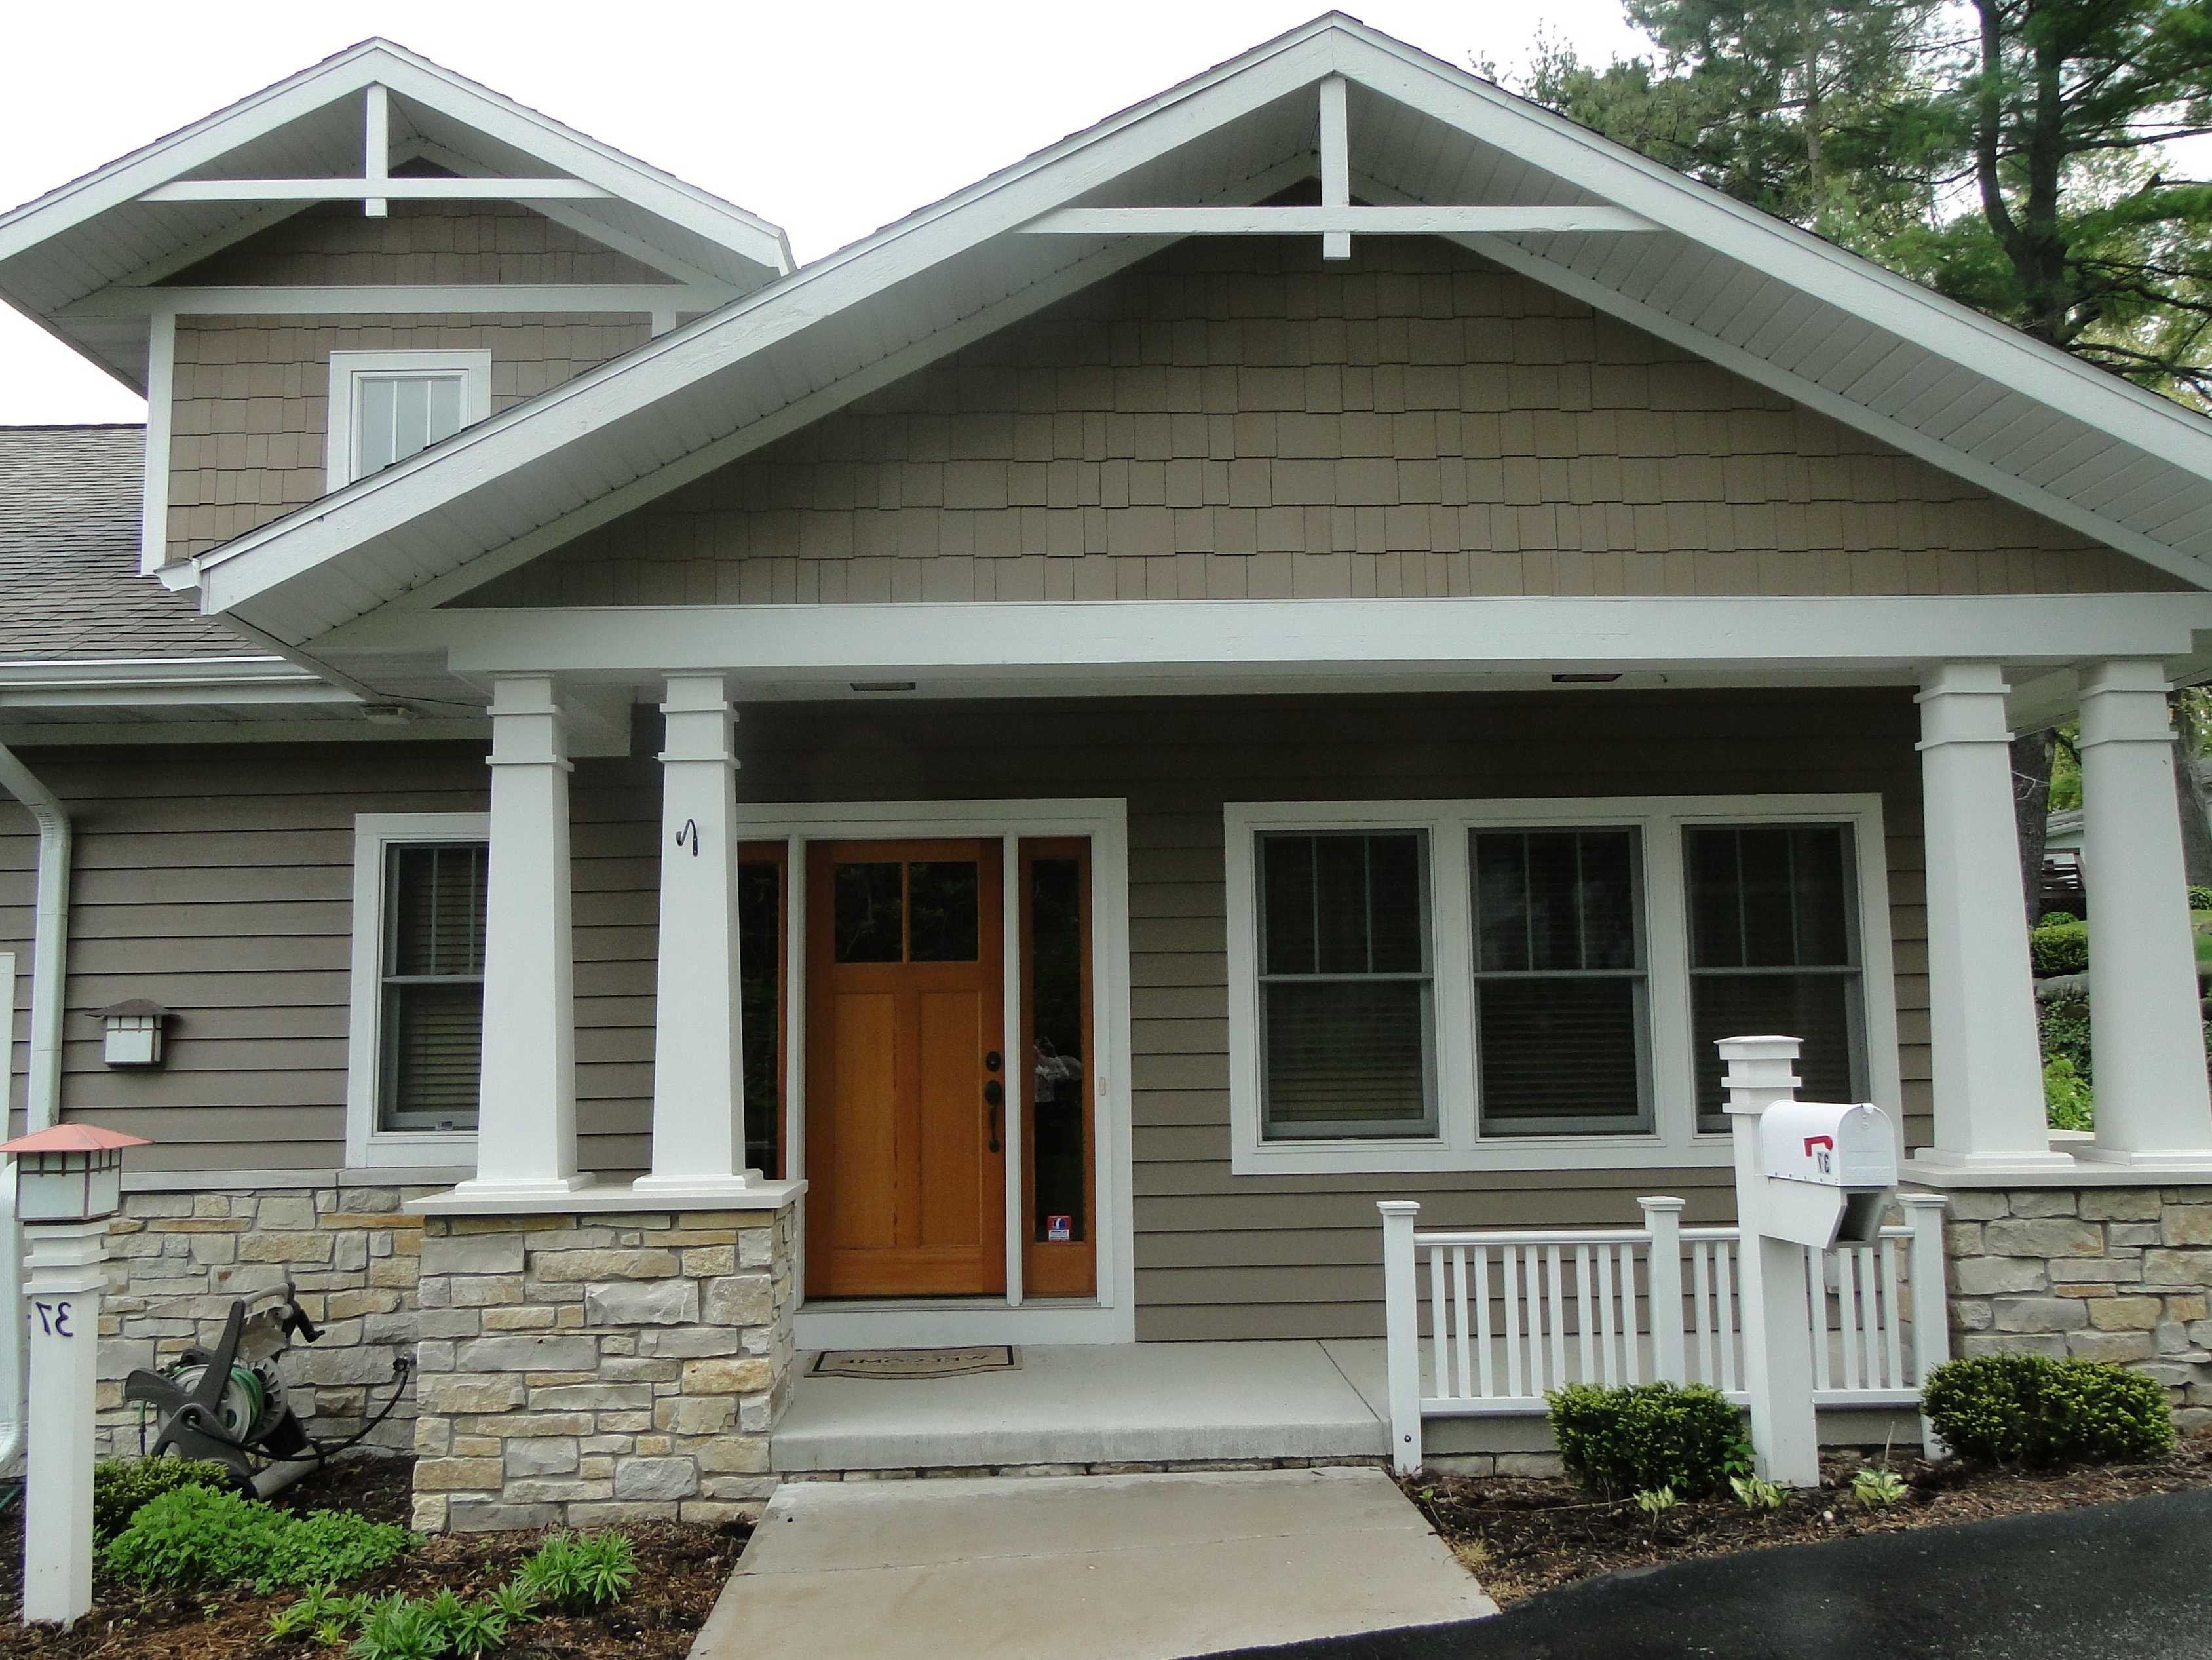 10 gorgeous front porch ideas for small houses